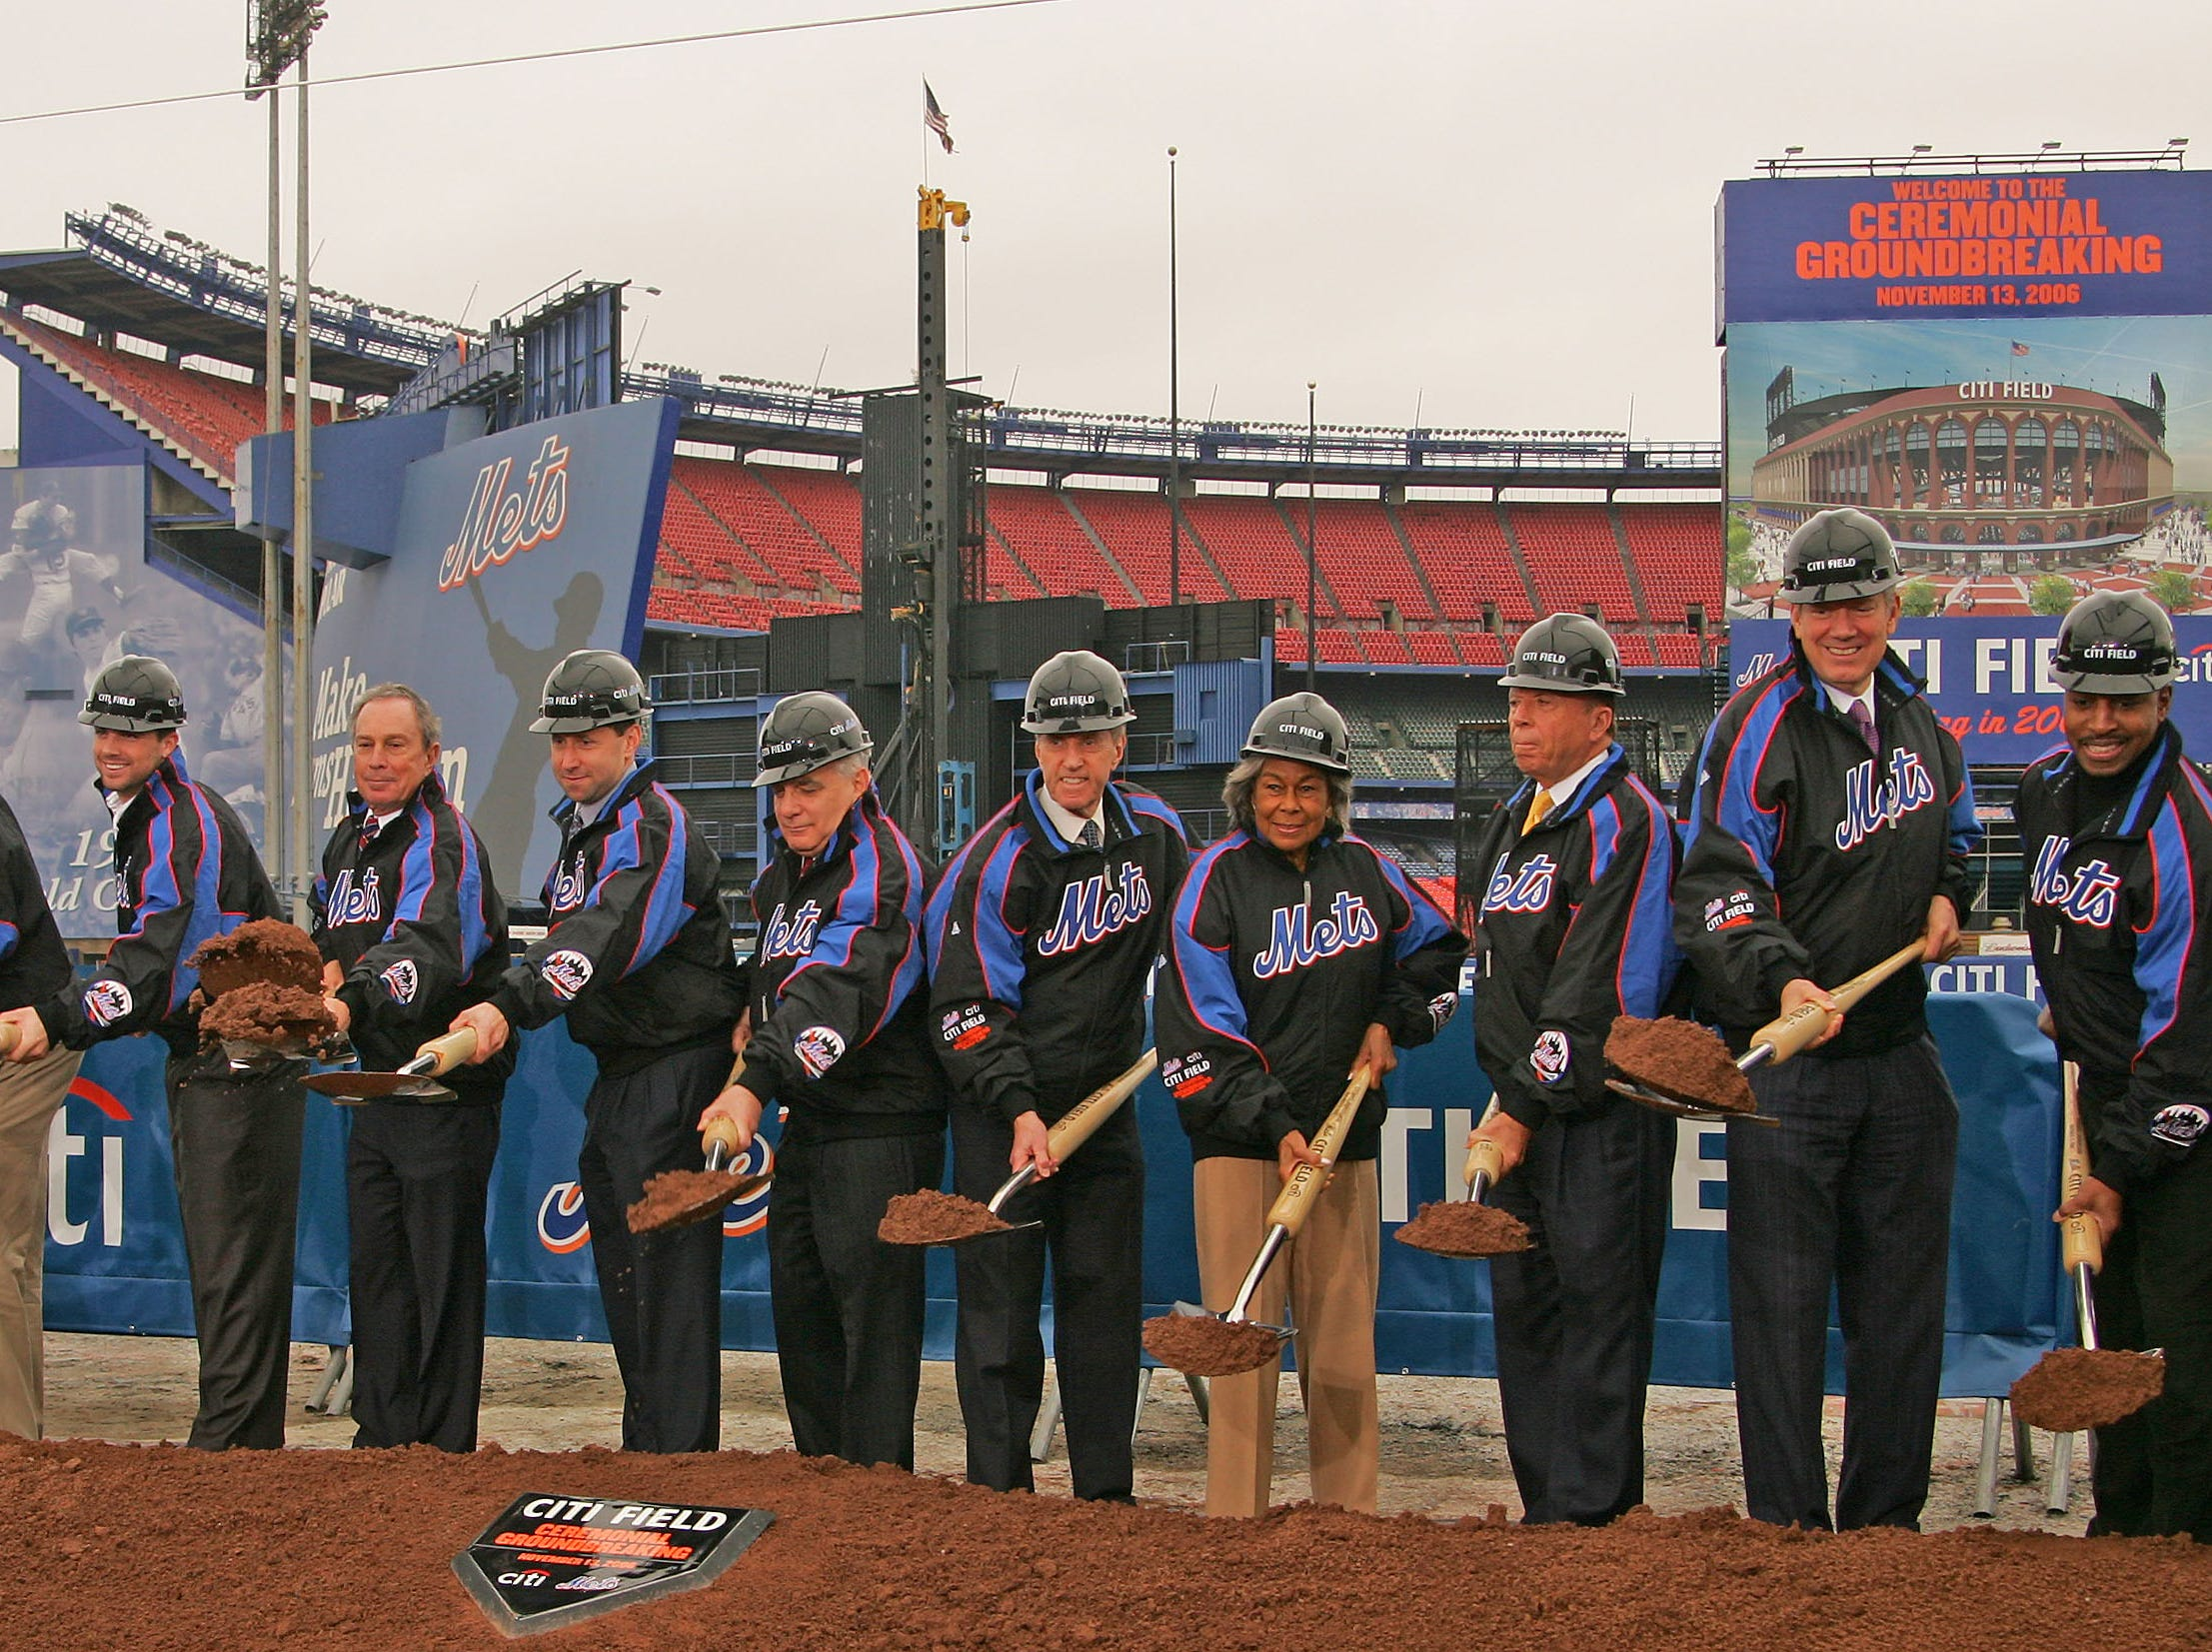 Participants in the Mets groundbreaking ceremony, from left, Jose Reyes, Sheldon Silver, David Wright, New York City Mayor Michael Bloomberg, New York Mets Execitive Vice President Jeff Wilpon, Lewis Kaden of Citigroup, New York Mets Chairman and CEO Fred Wilpon, founder of the Jackie Robinson foundation Rachel Robinson, Saul Katz, New York State Governor George Pataki and Mets Manager Willie Randolph, break ground for cameras at the site of the new Mets stadium in New York, Monday, Nov. 13, 2006.     (AP Photo/Ed Betz)